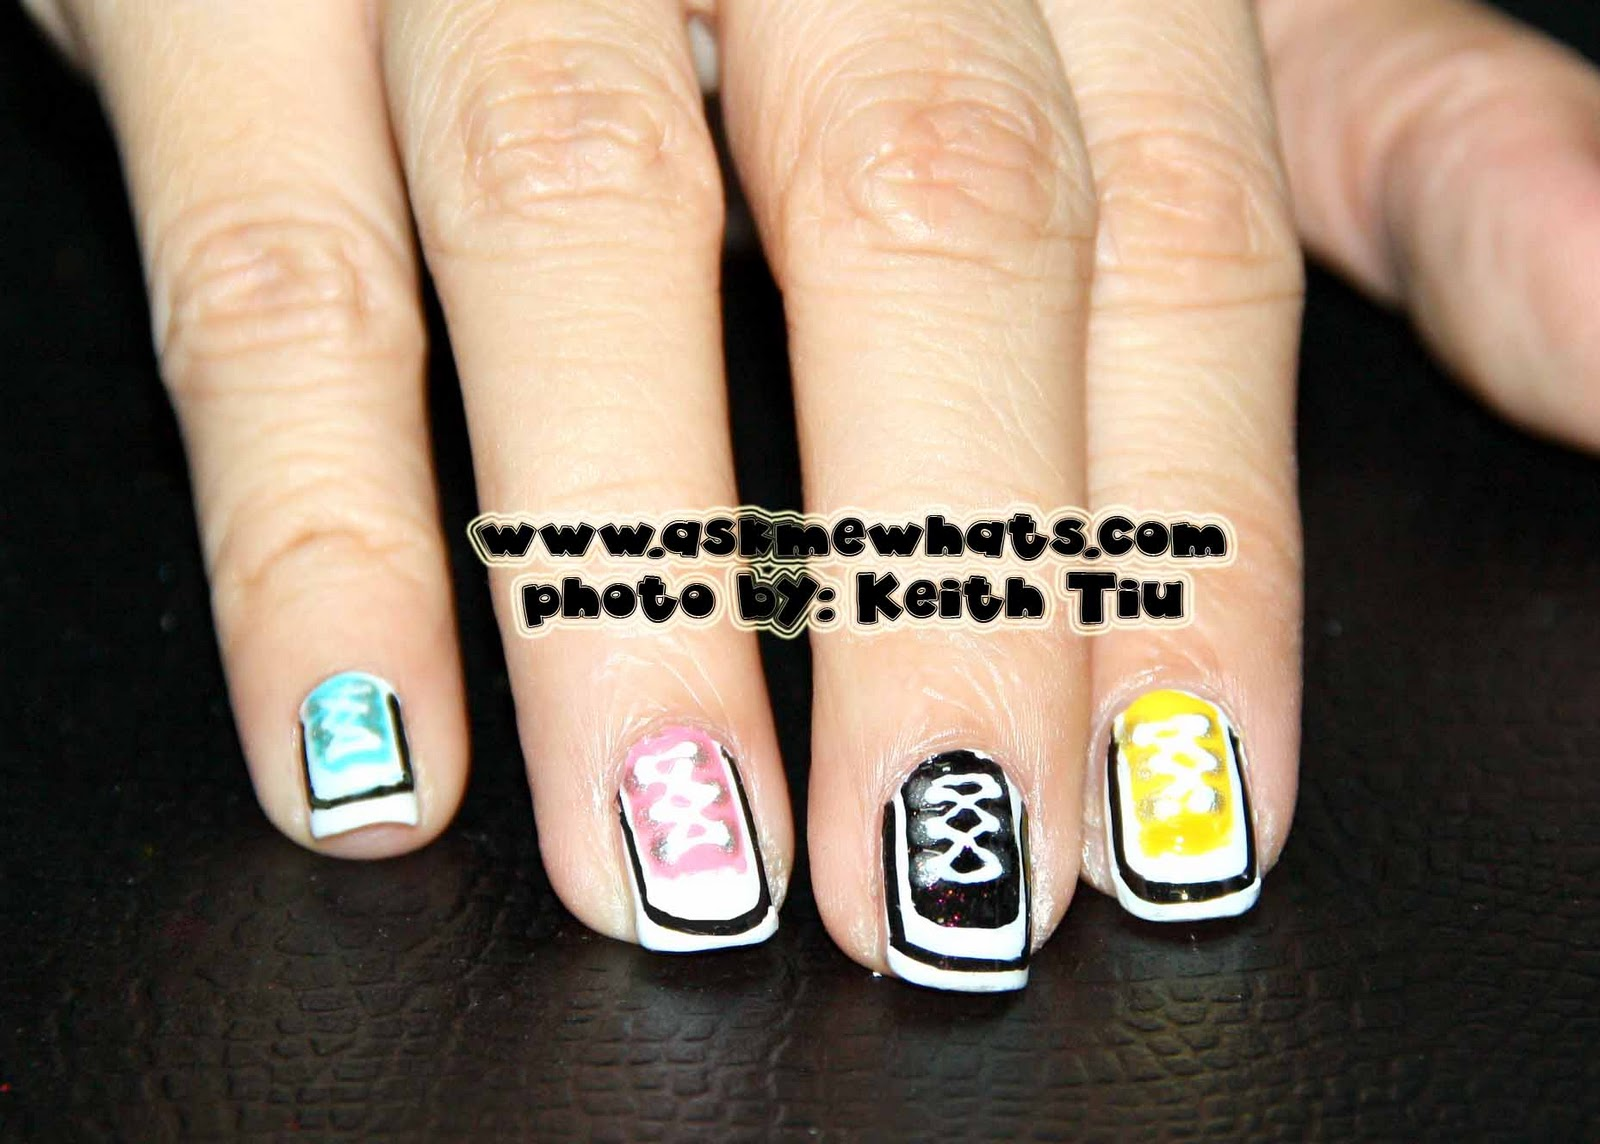 Askmewhats top beauty blogger philippines skincare makeup nail art tutorial shoes on my nails prinsesfo Images